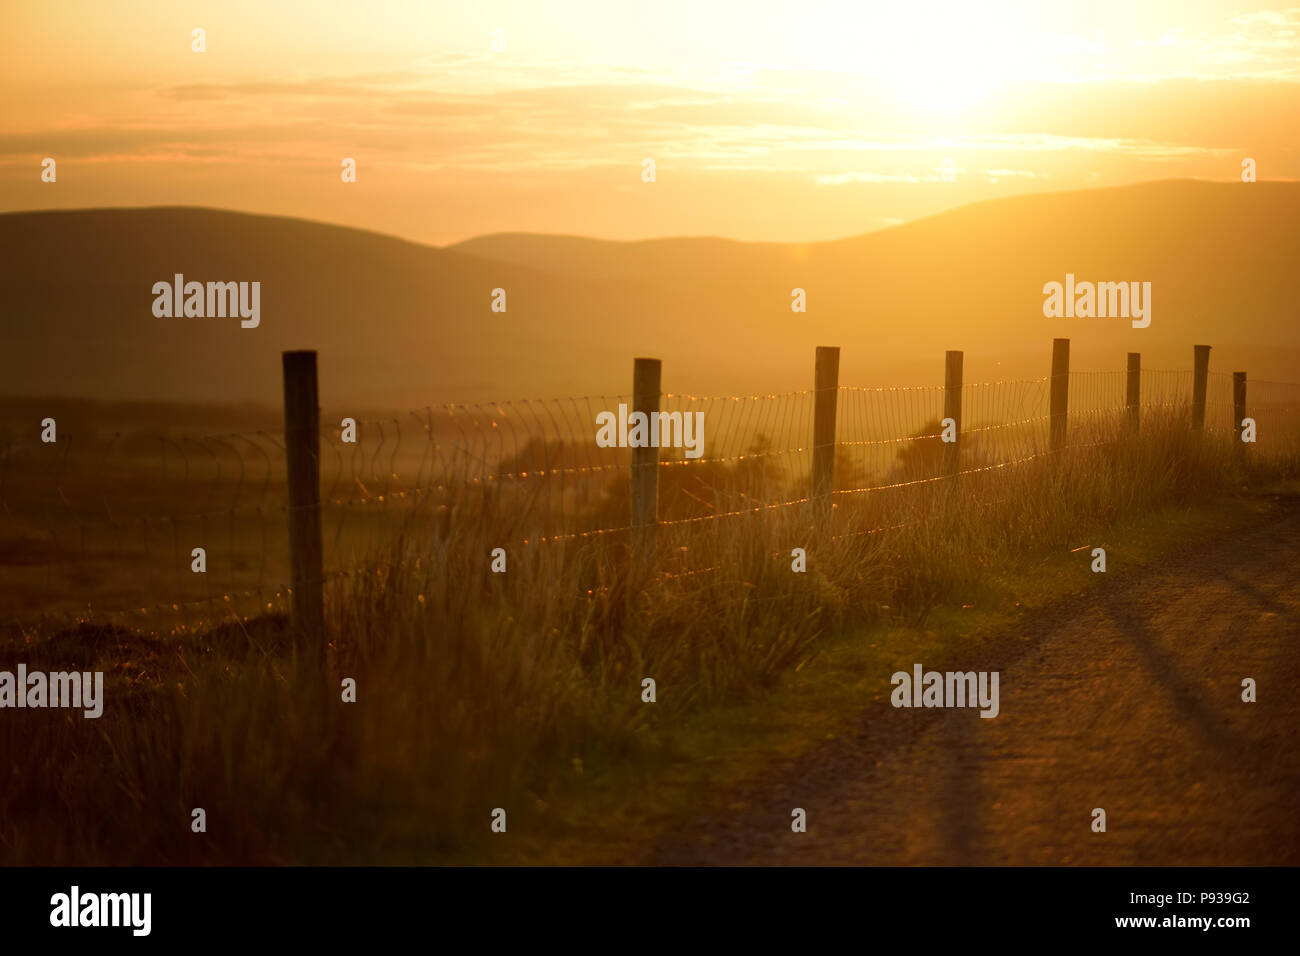 Beautiful sunset in Connemara. Scenic Irish countryside road leading towards magnificent mountains, County Galway, Ireland. - Stock Image